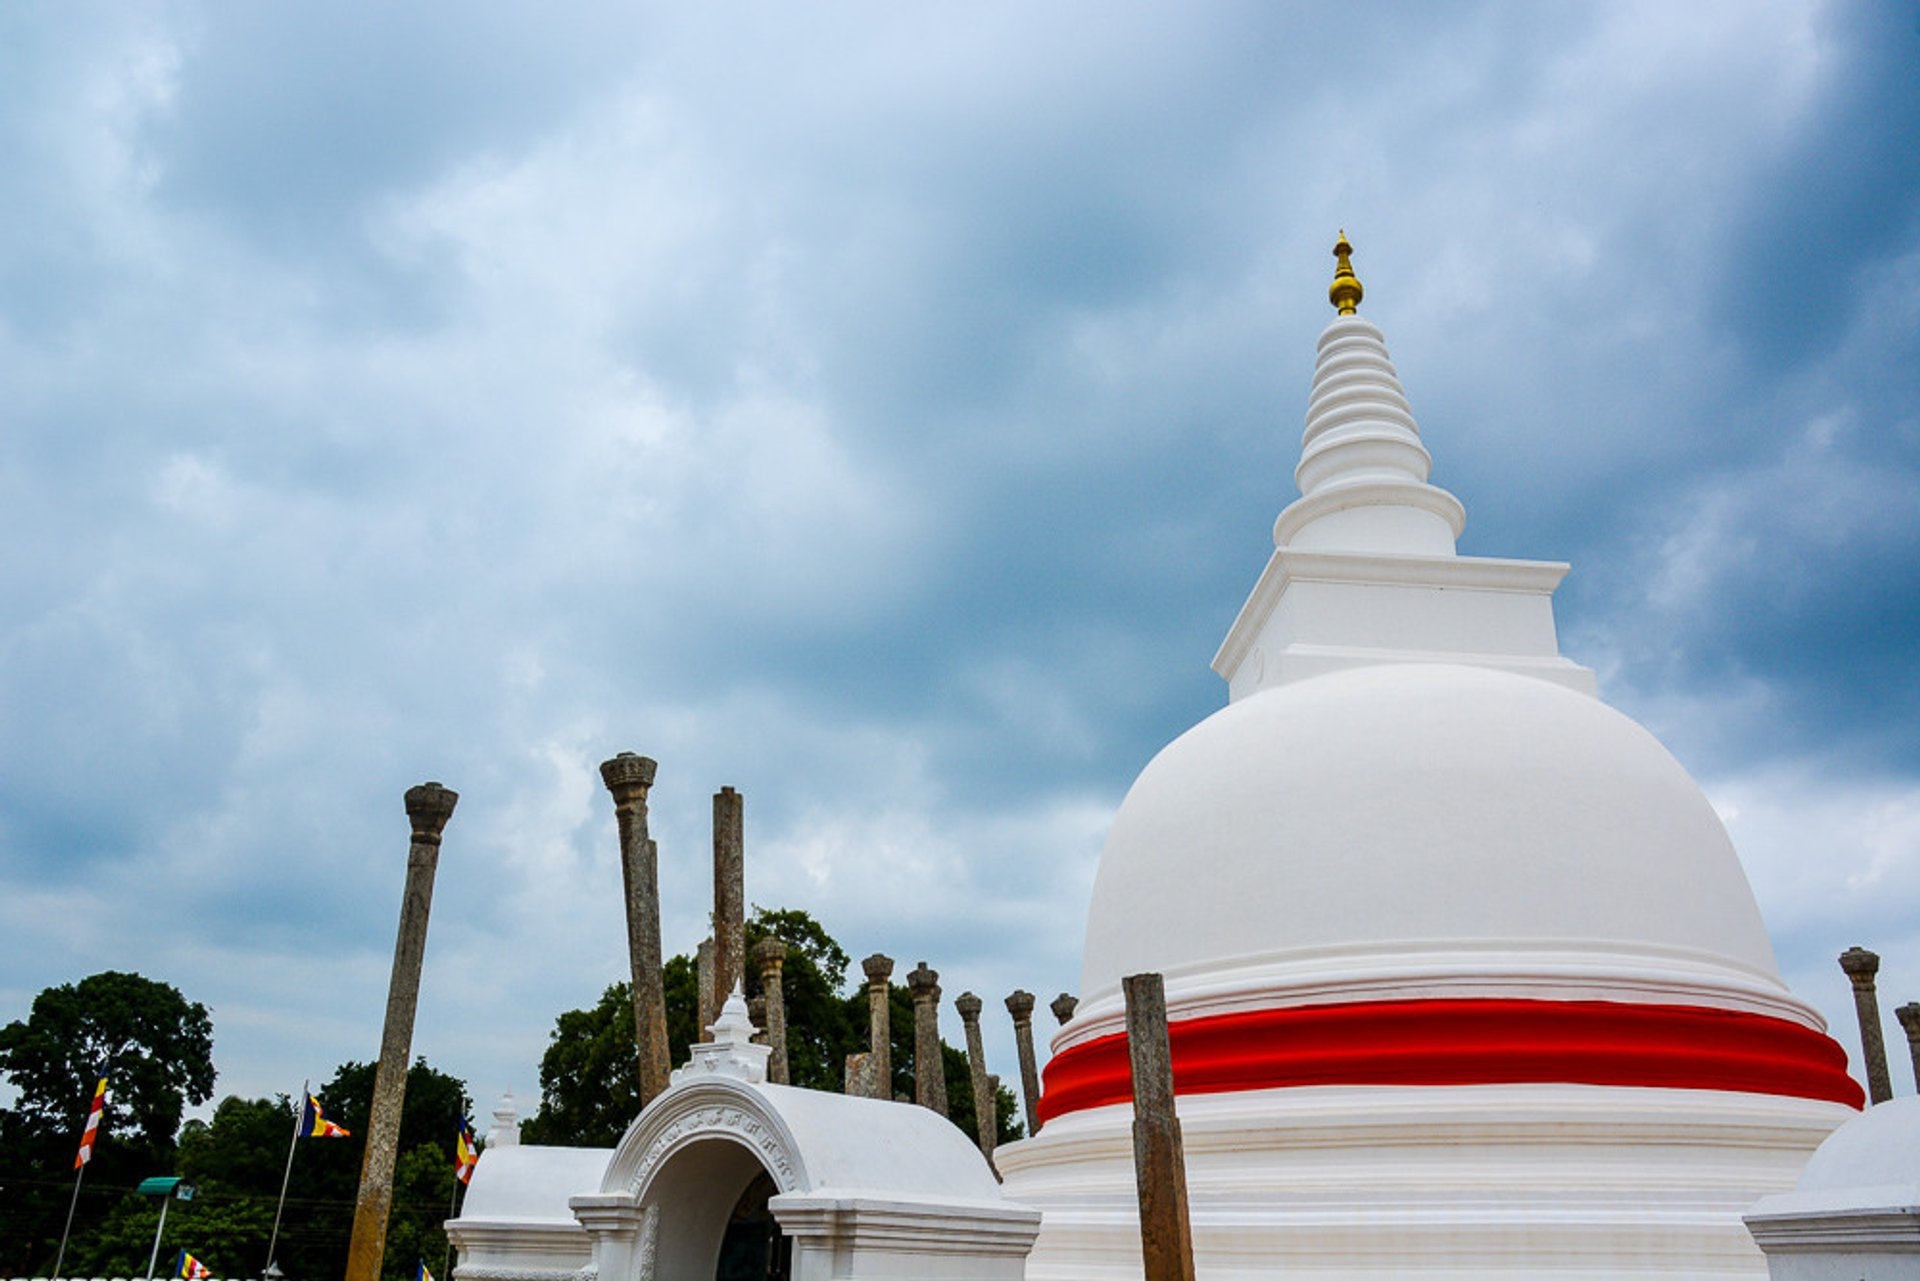 Anuradhapura in Sri Lanka - Best Season 2019